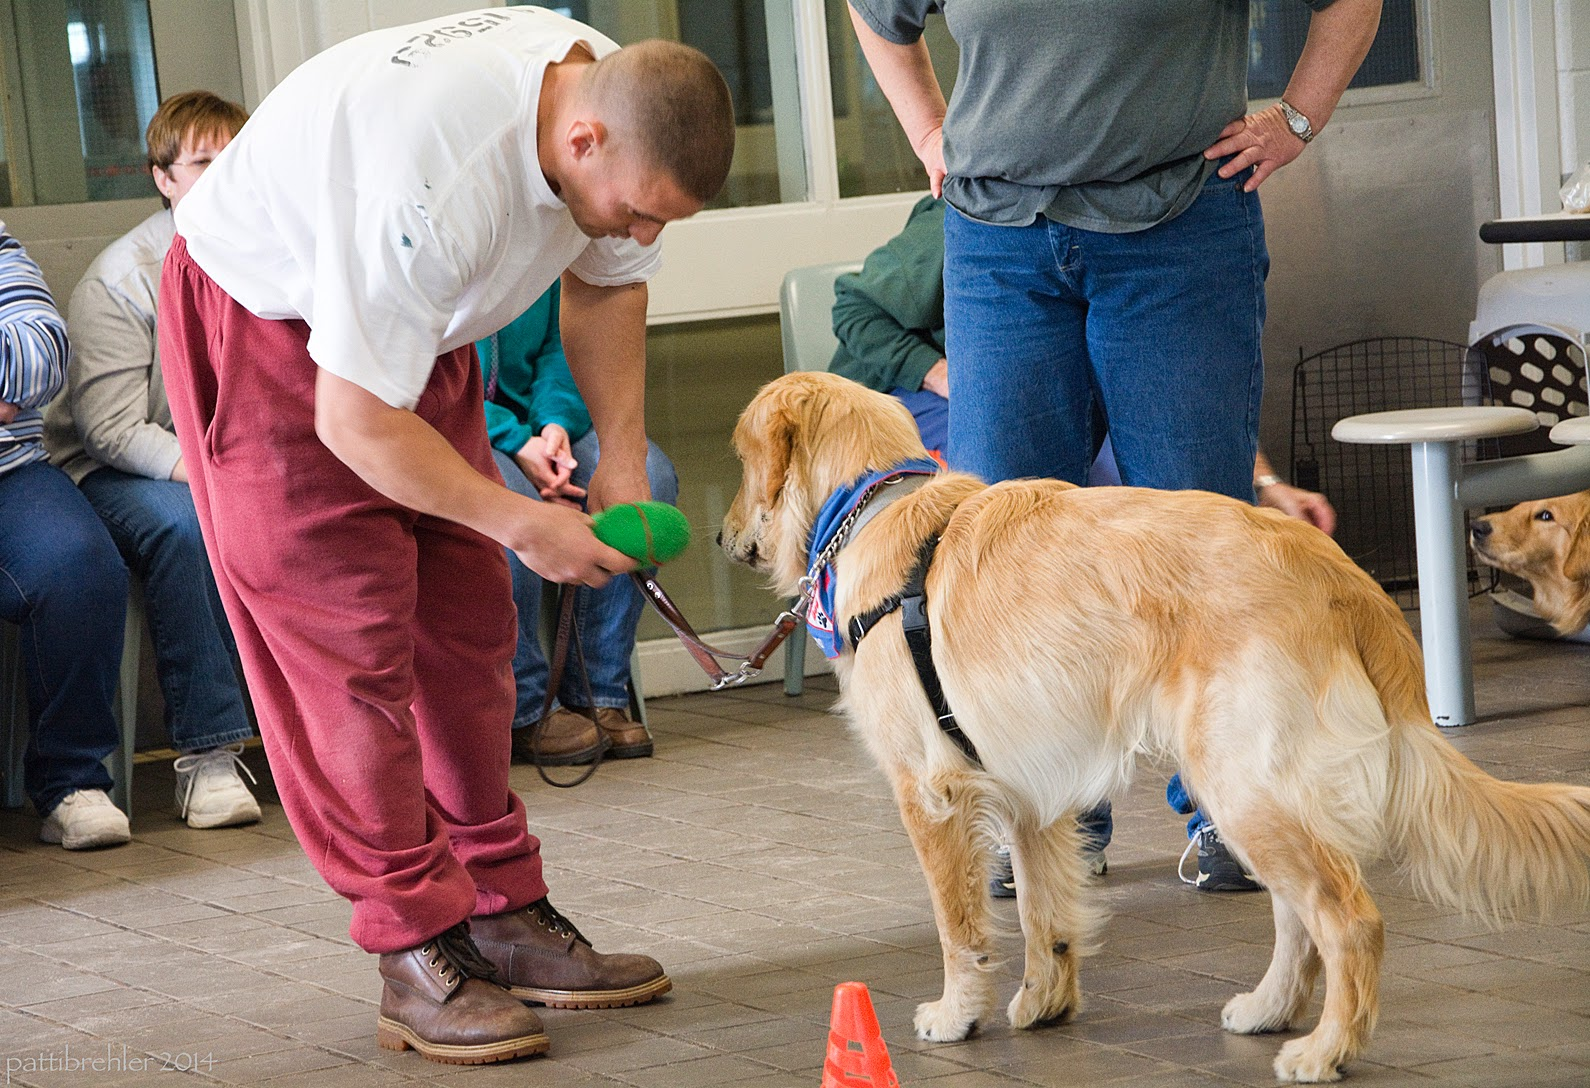 A man dressed in maroon sweat pants and a white t-shirt is bending over toward a golden retriever that is standing in front of him, facing him and away from the camera. The man is holding out a green plush toy to the puppy and holding the dog's leash with his left hand. The puppy is wearing the blue Future Leader Dog bandana and a black body harness. There is an orange cone just visible in the foreground. There are three women sitting in the background but not quite visible, and the woman in jeans and a grey t-shirt with her hands on her hips standing behind the dog, but she is only visible from her shoulders down.